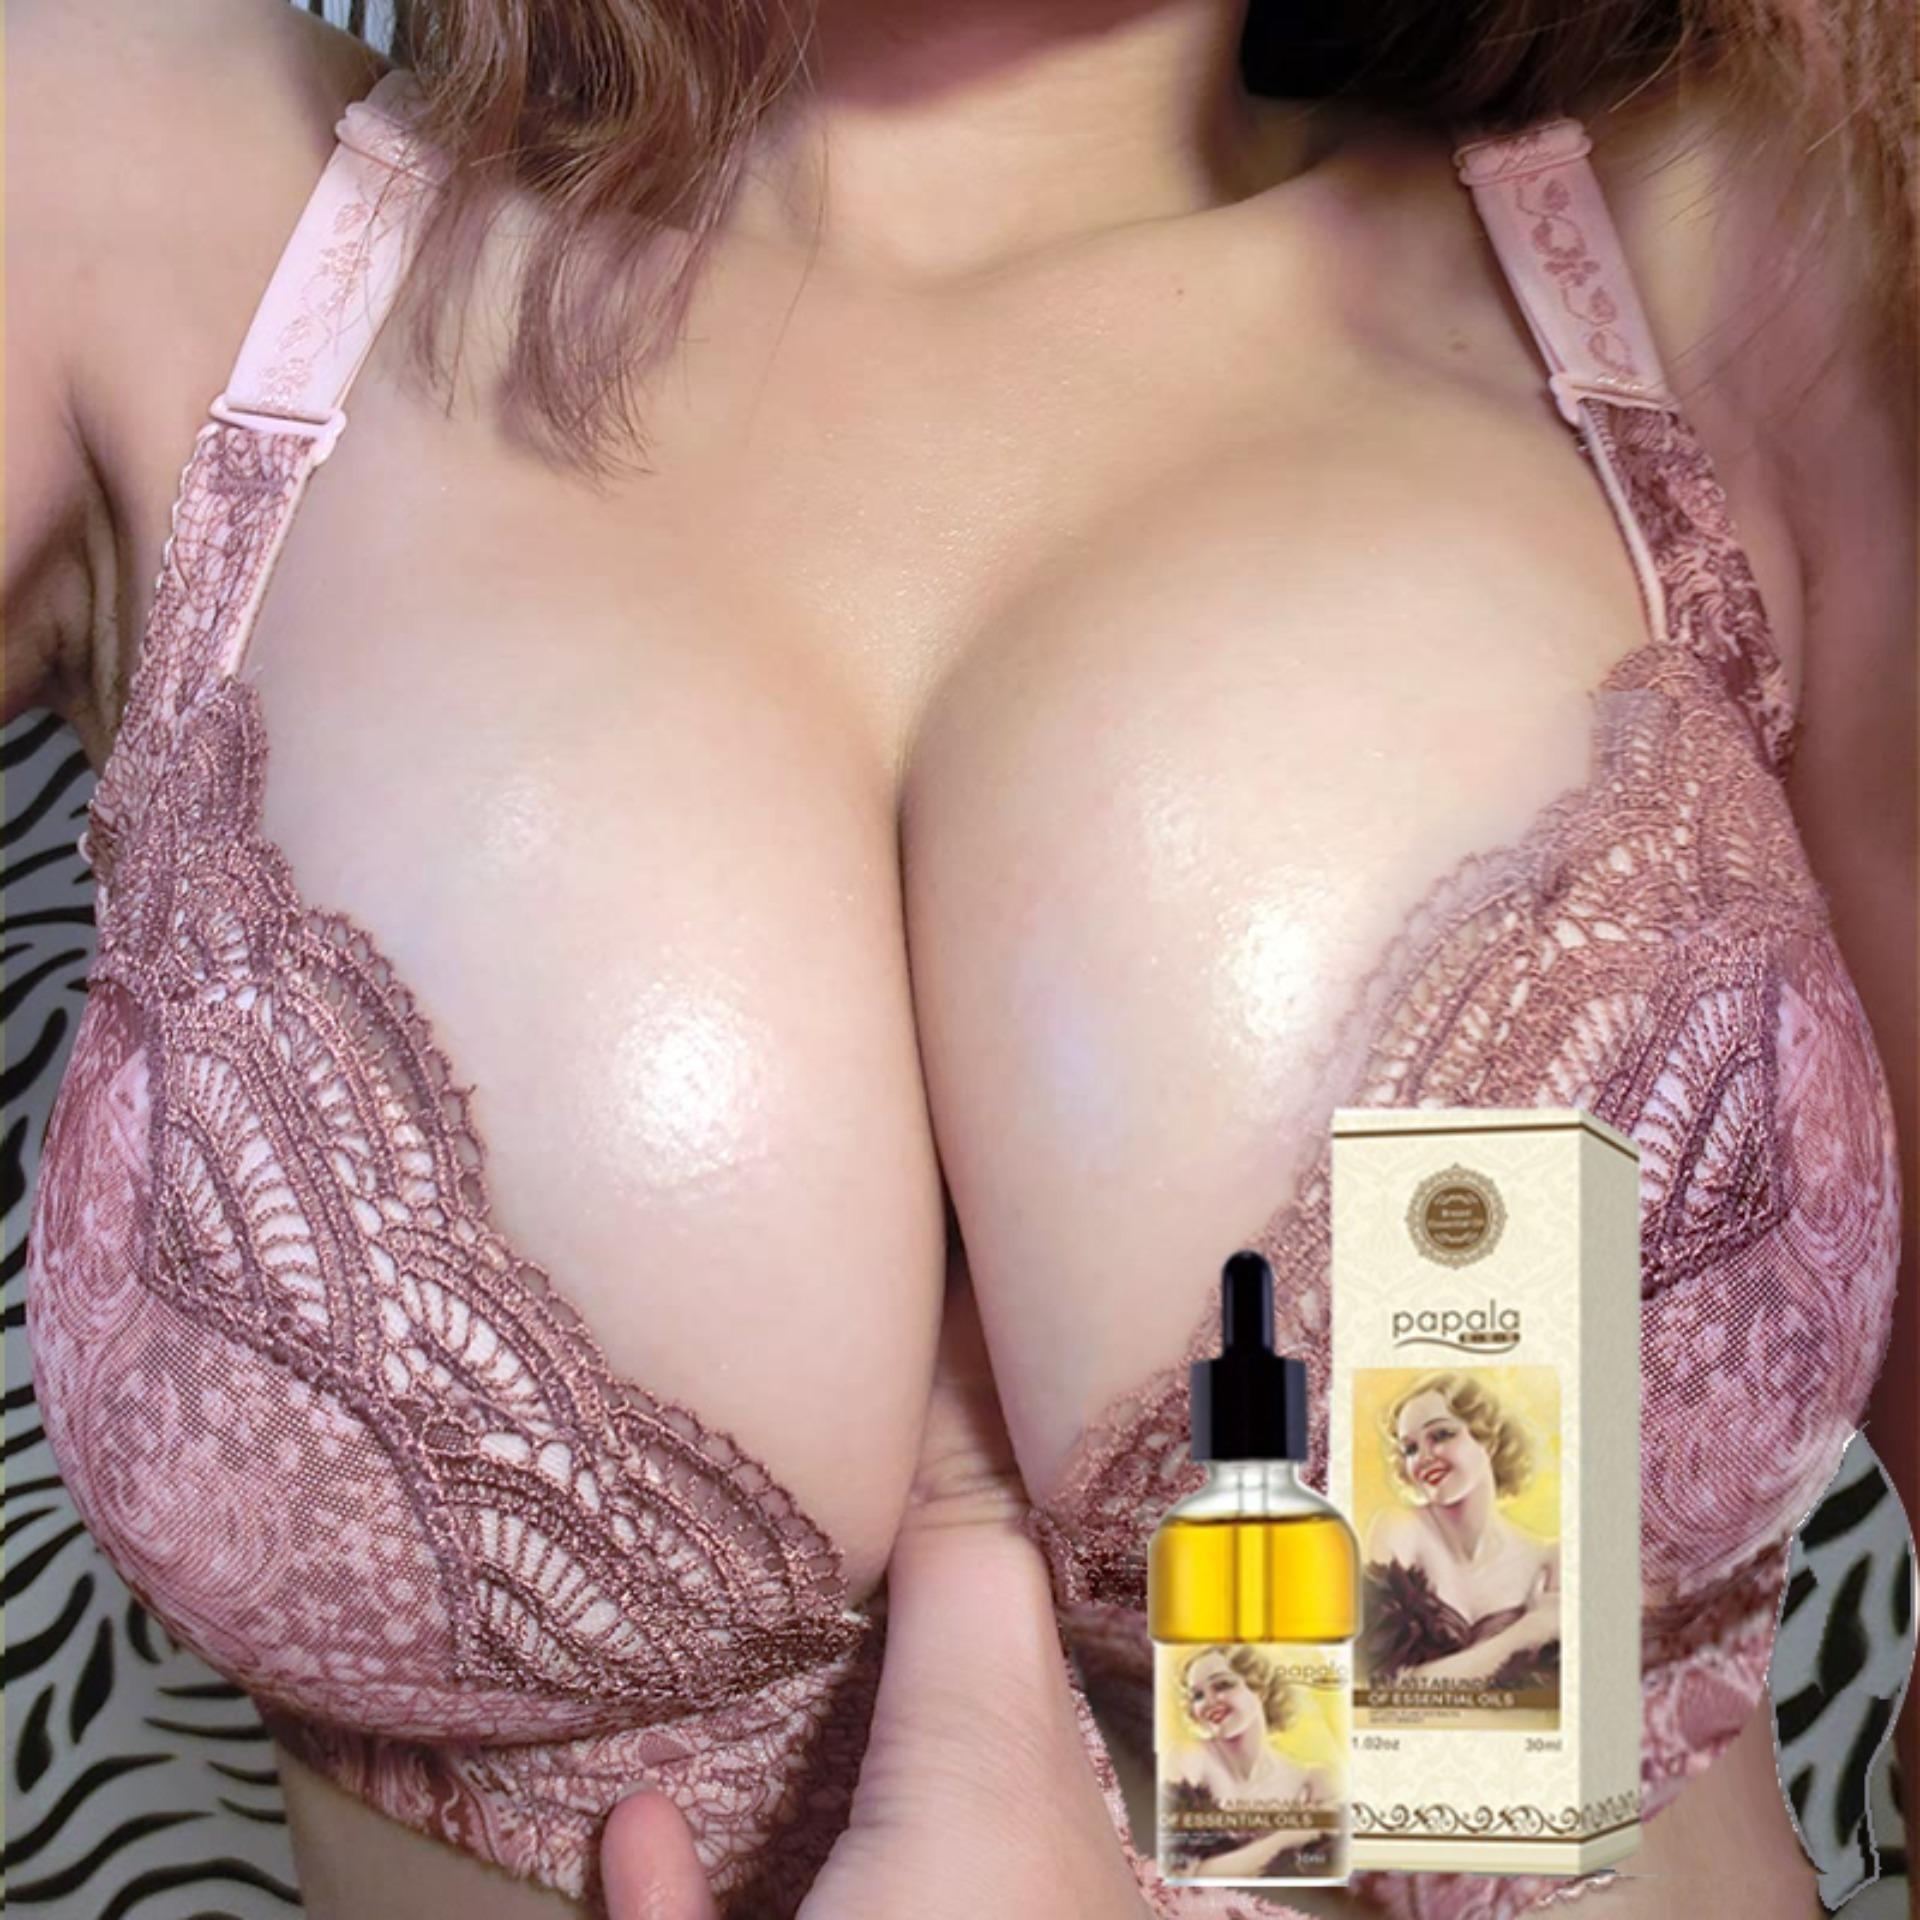 100% Genuine PAPALA Enhanced Cream Increases Large Breasts Postpartum Expansion Larger Chest Firming Natural Essential Oil 30ml